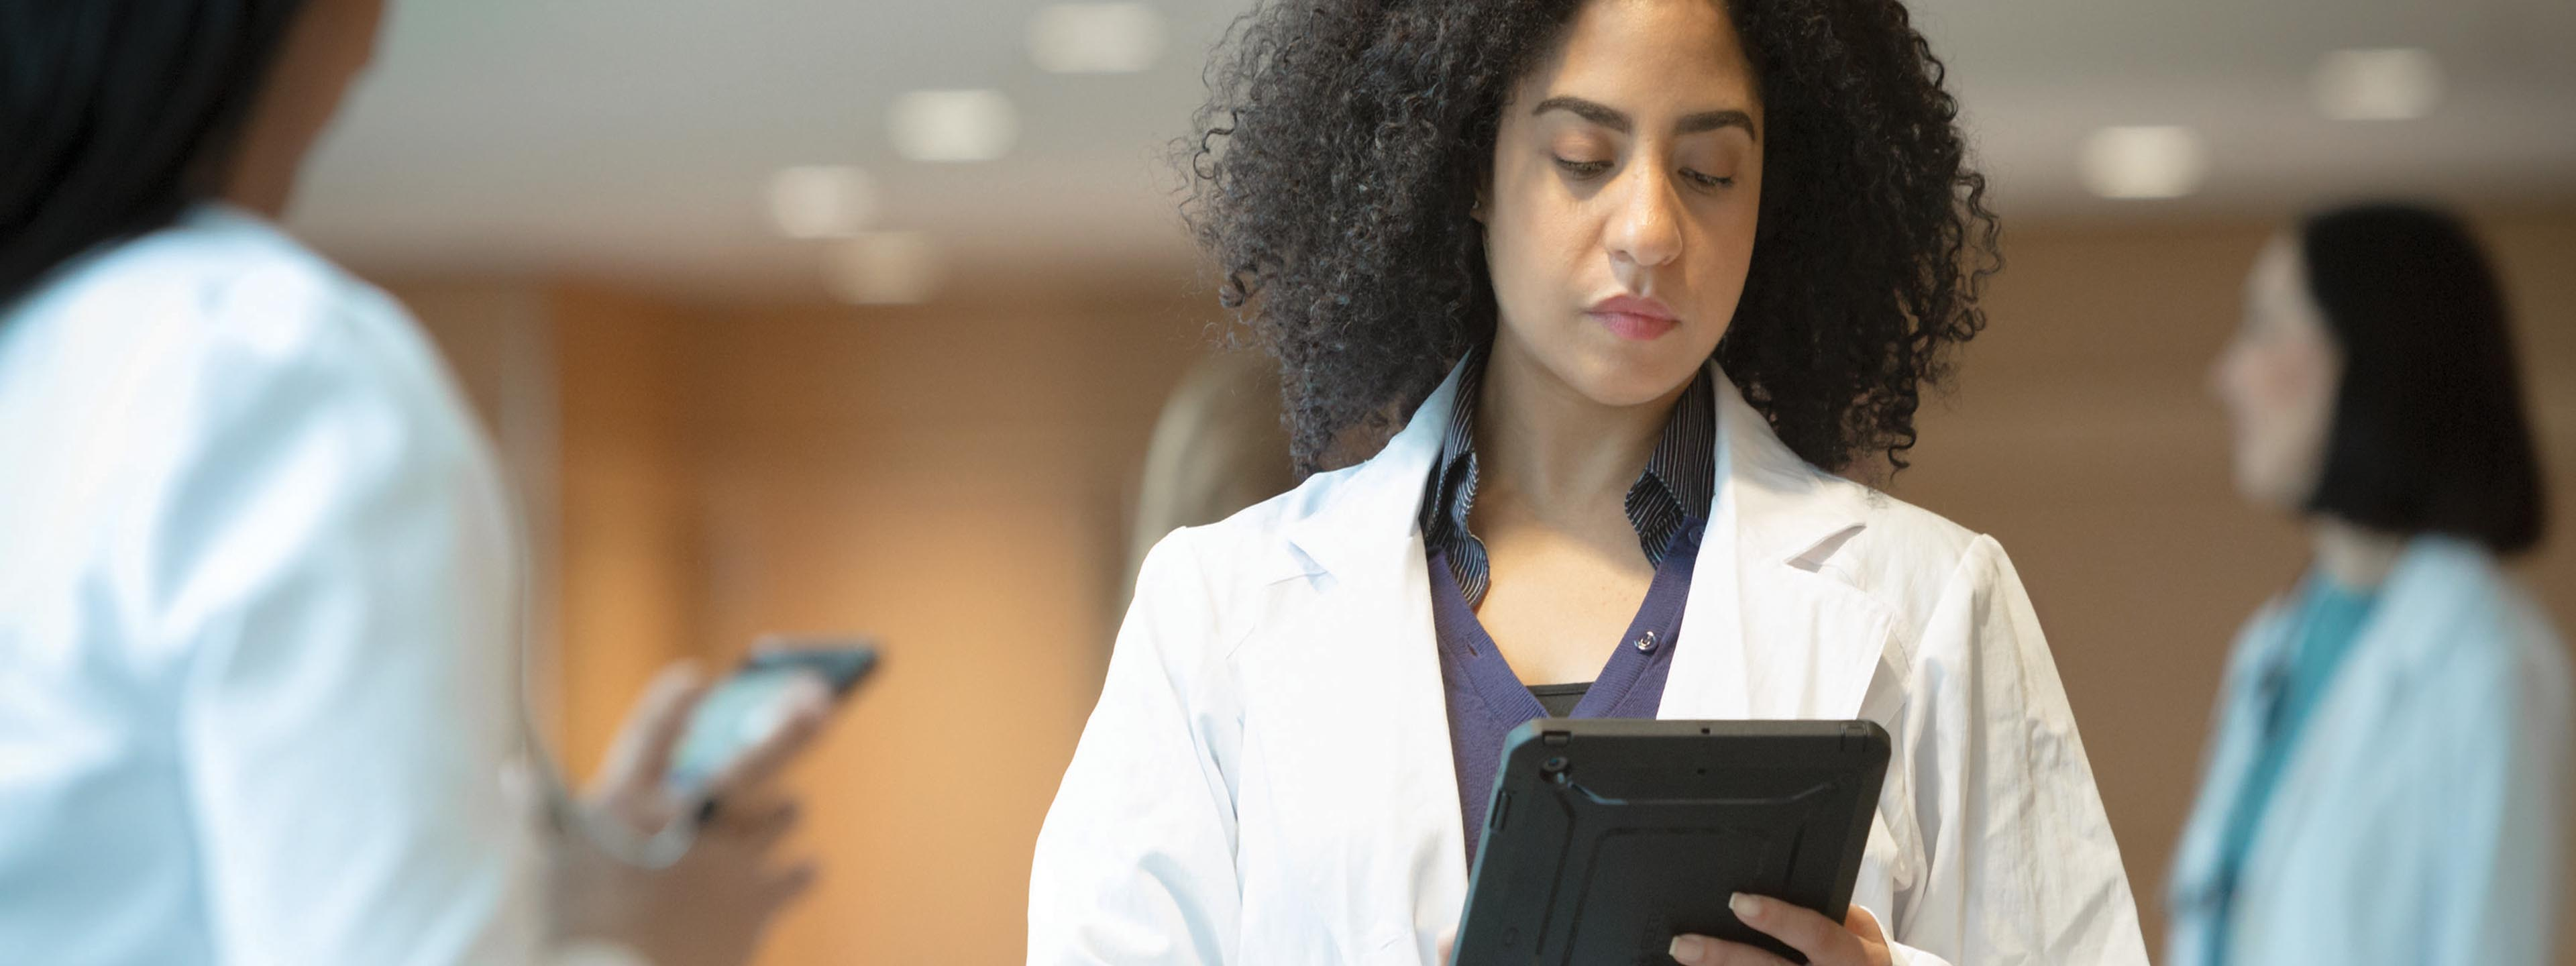 young woman white coat tablet